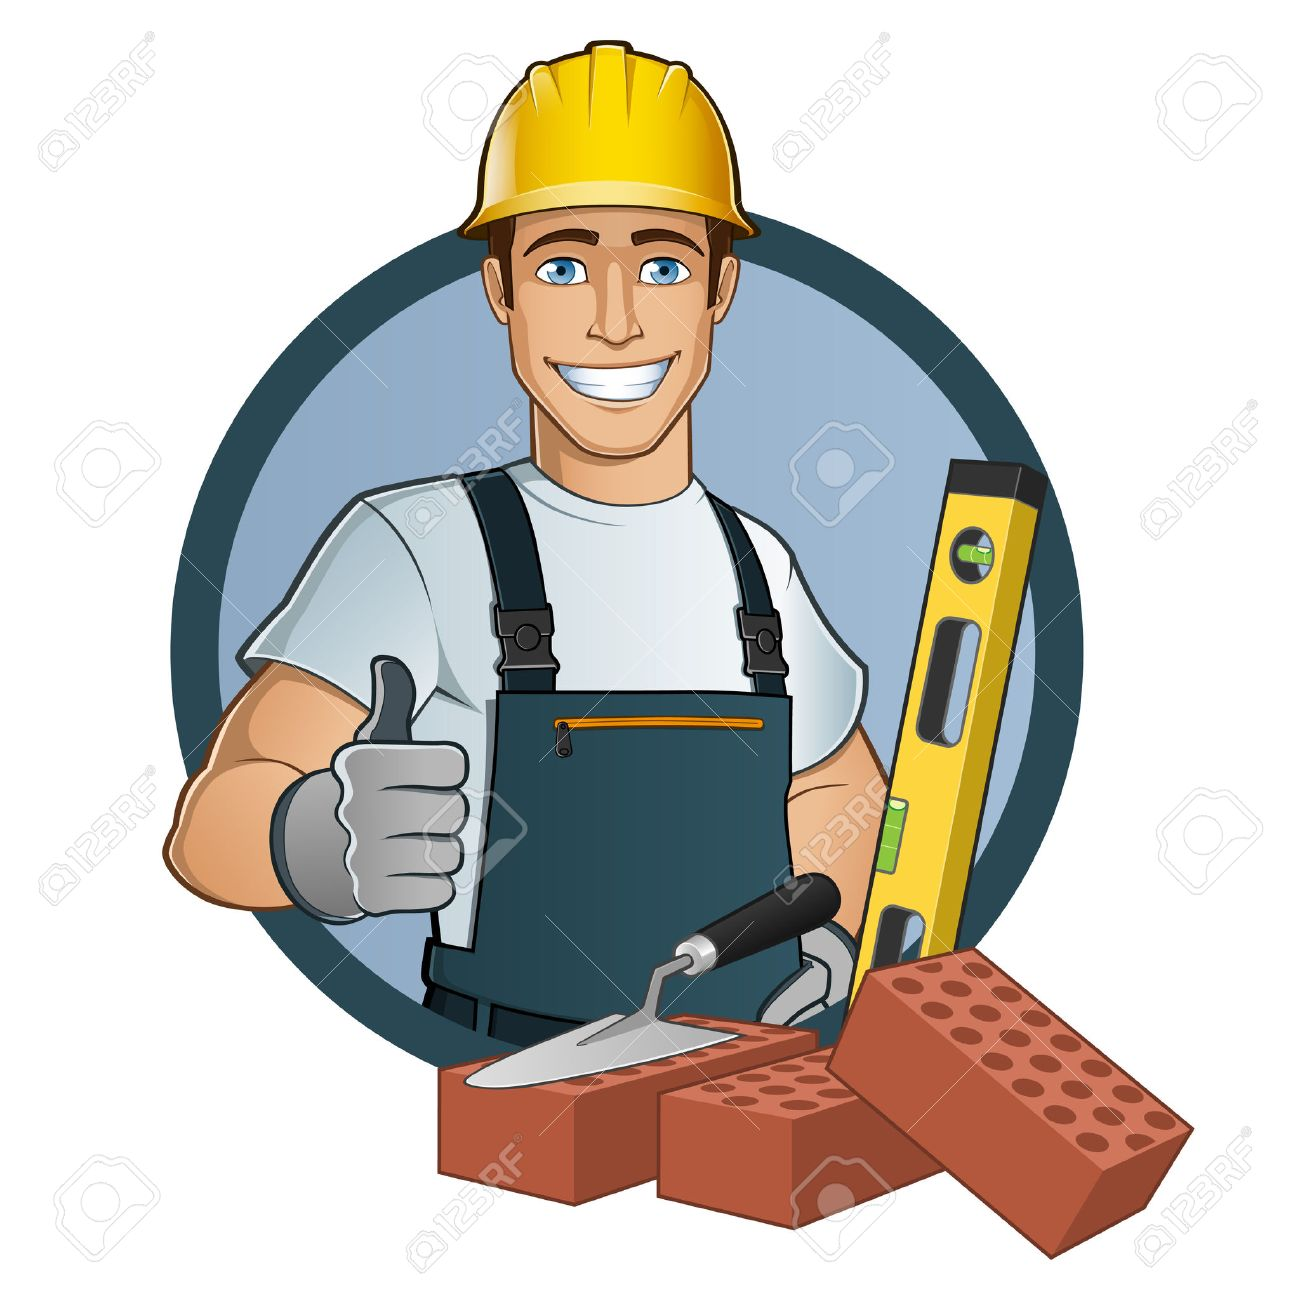 Man with different tools - 44058523